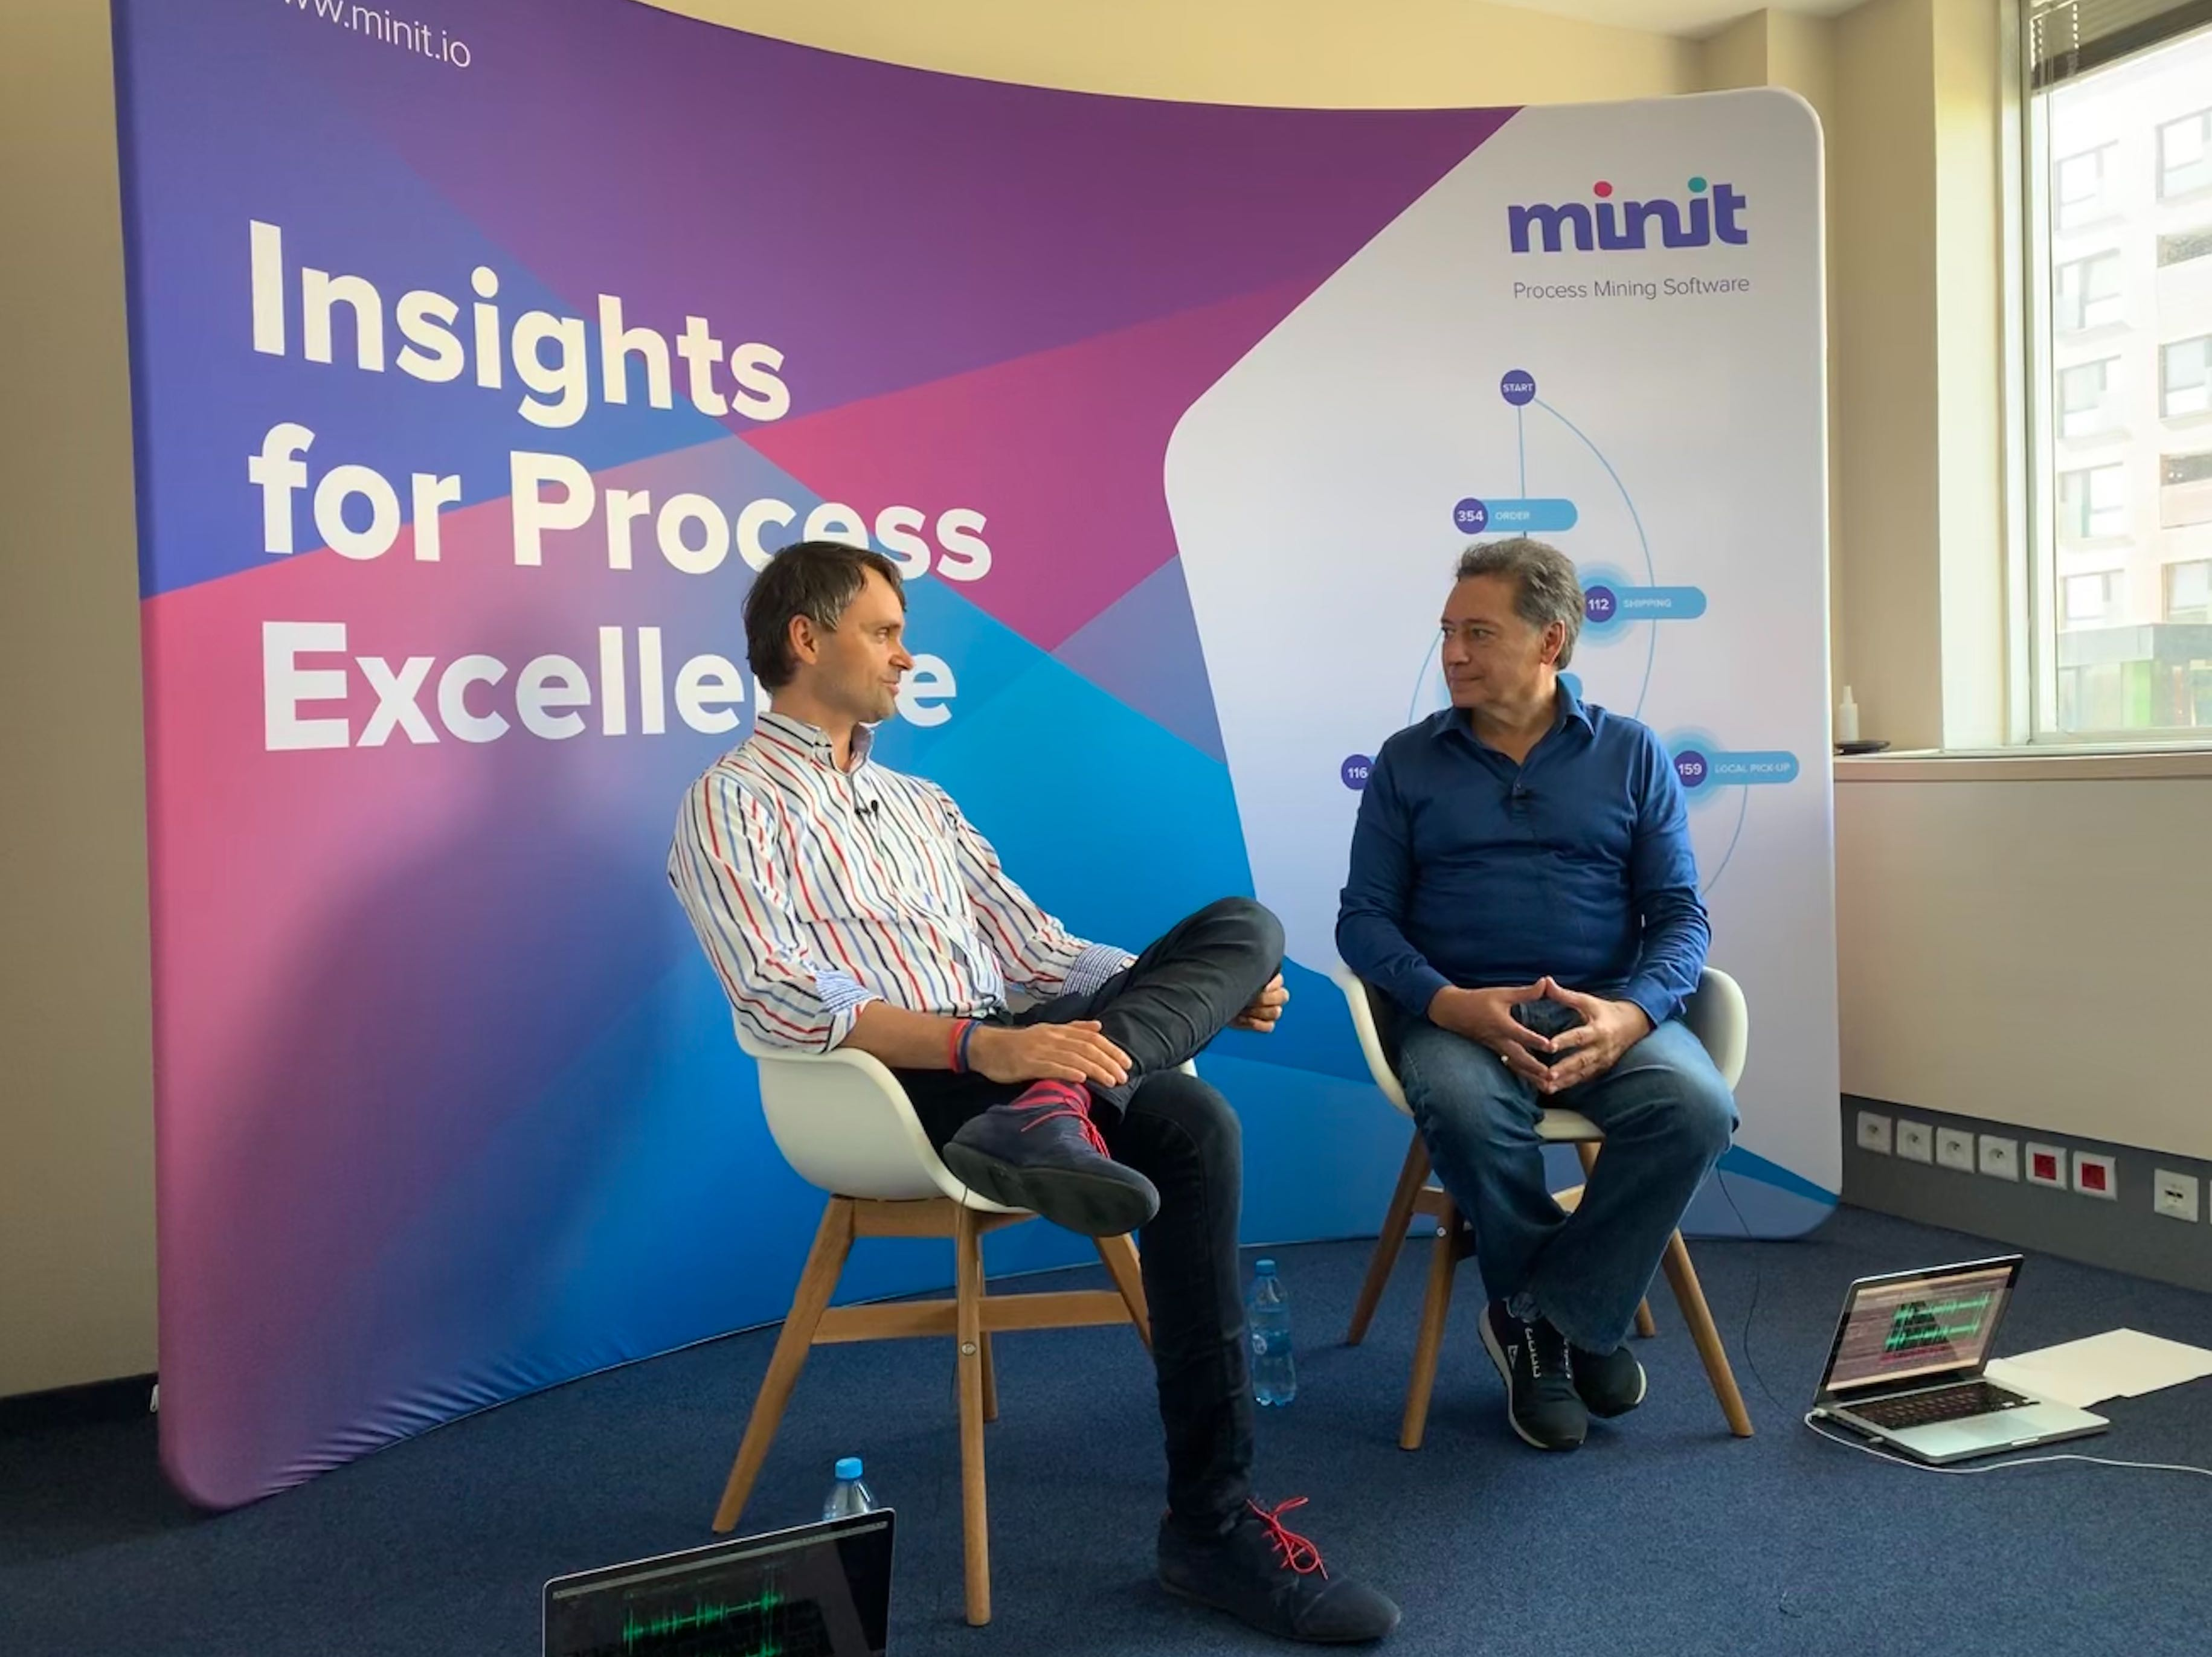 Minit CEO Rasto Hlavac (left) in the interview with Christian Morales